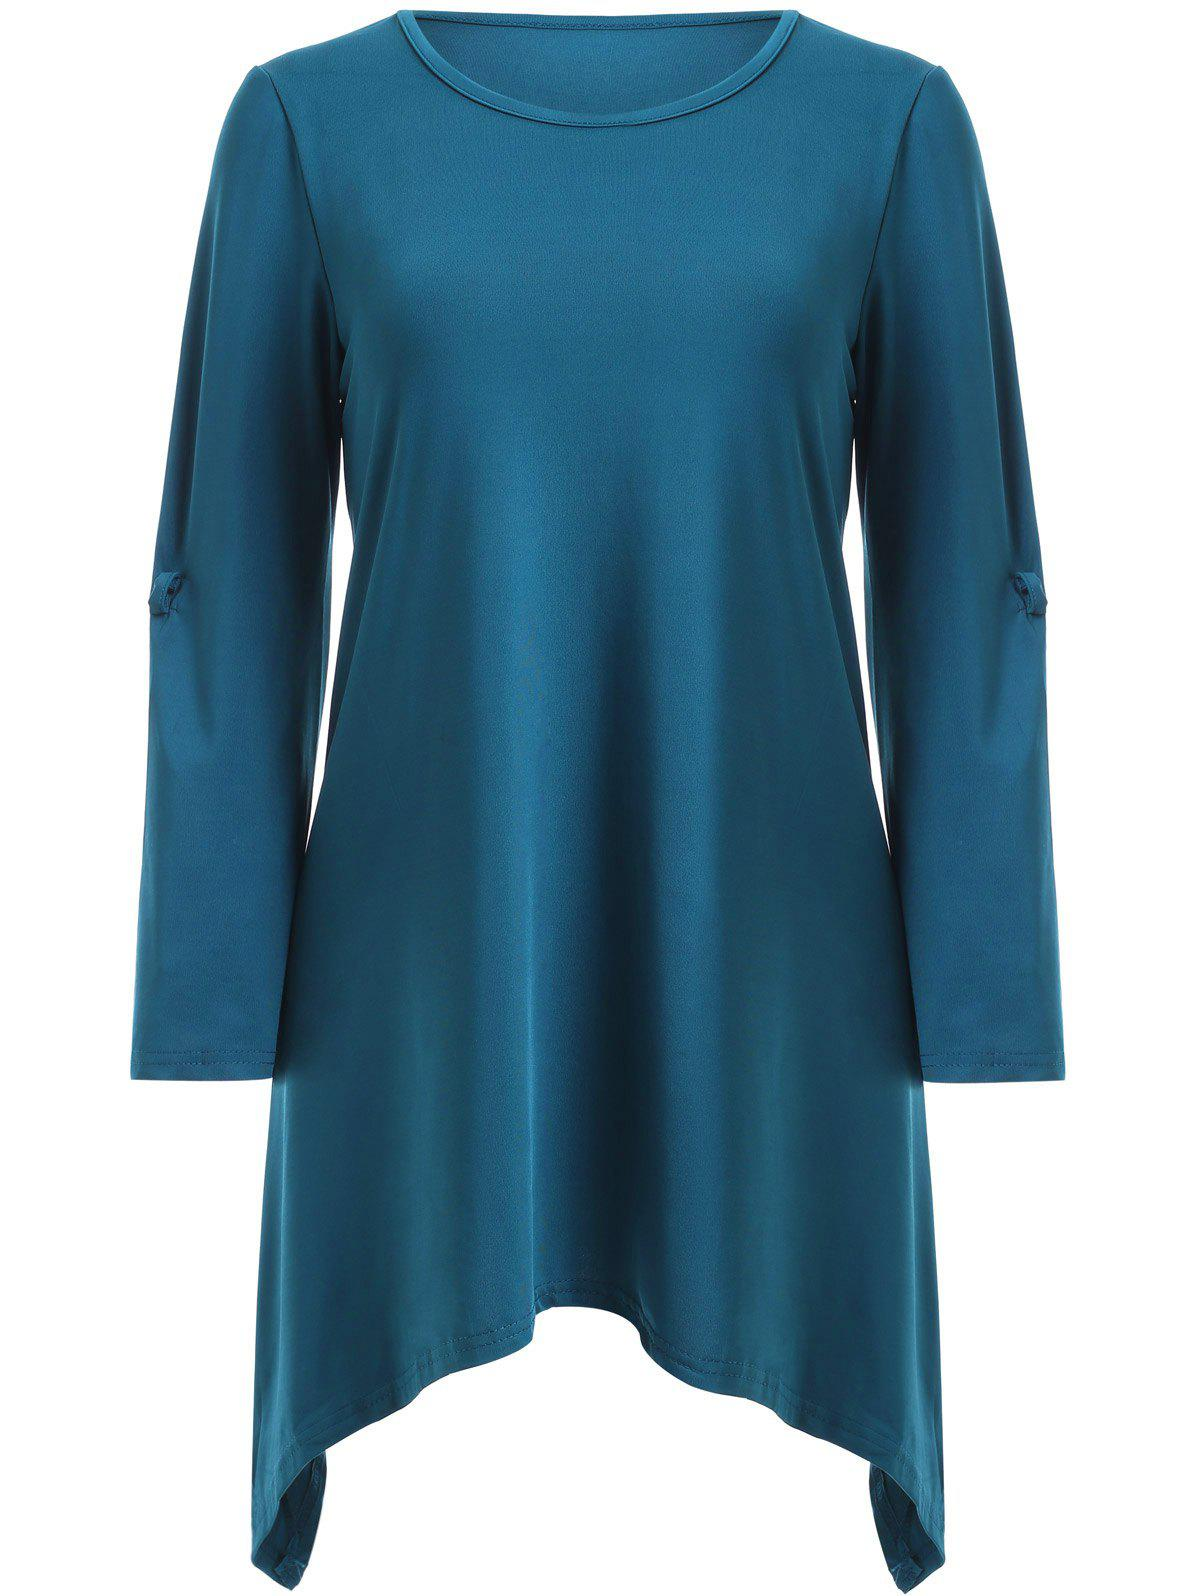 Stylish Scoop Neck Solid Color Ruched 3/4 Sleeve Irregular T-Shirt For Women stylish scoop neck solid color ruched 3 4 sleeve irregular t shirt for women